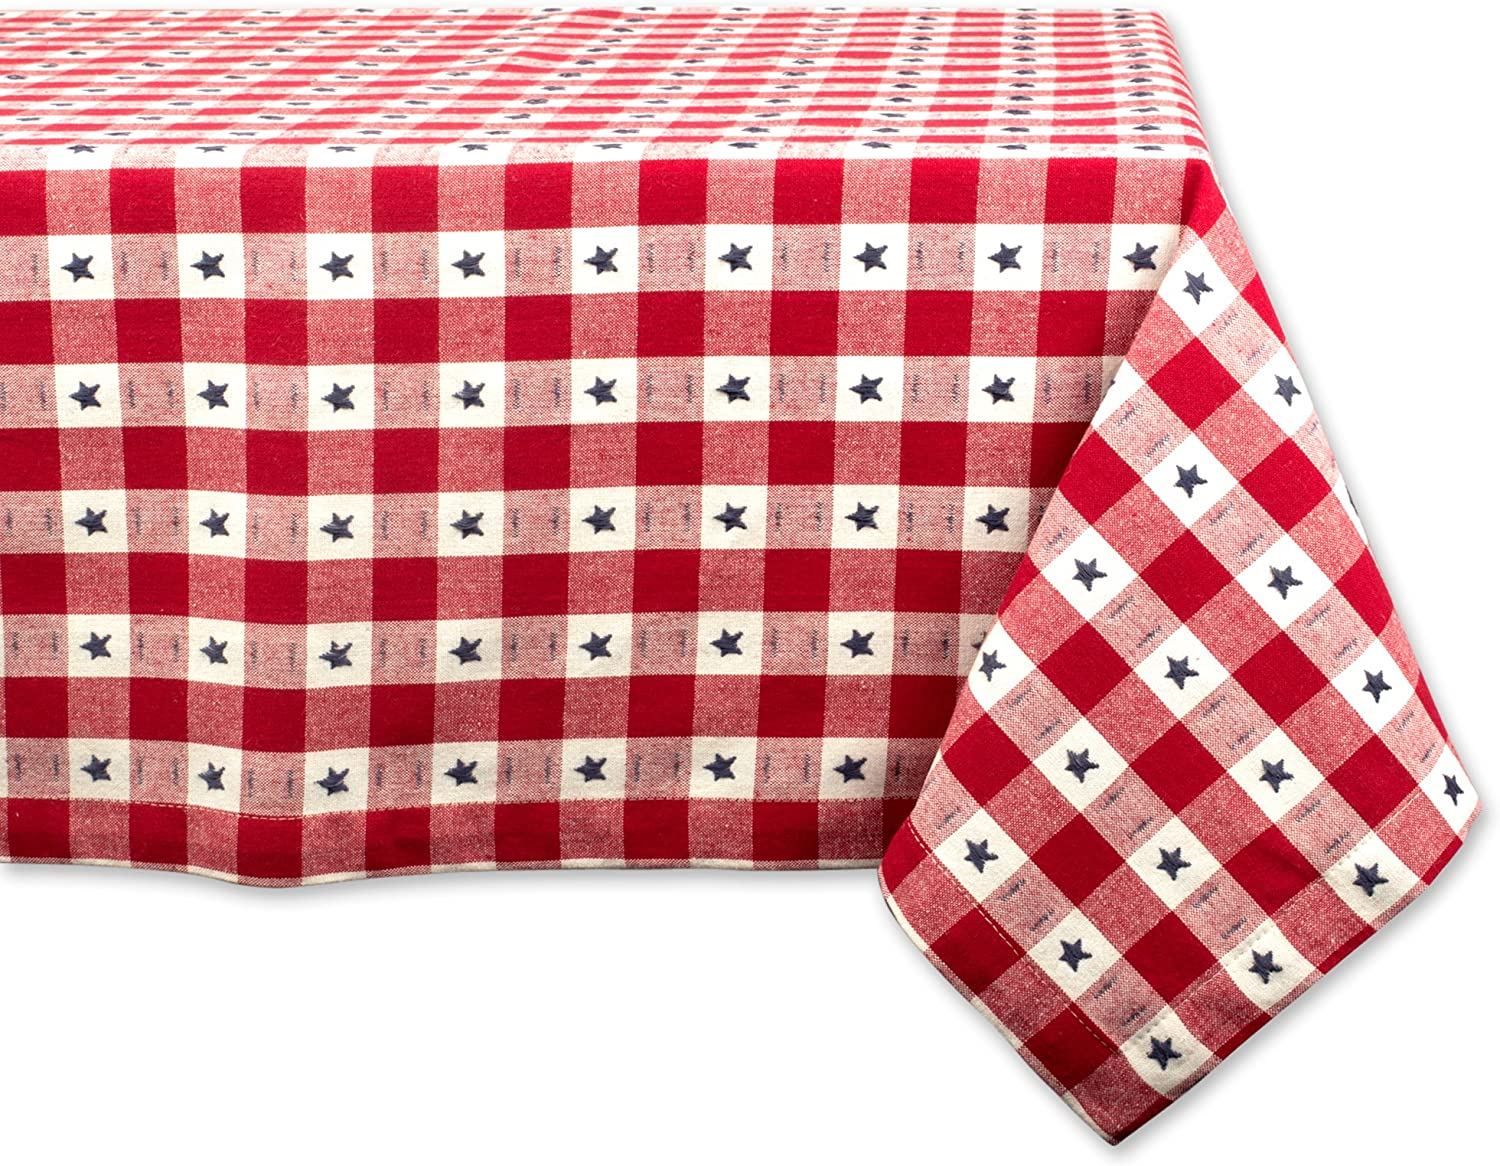 DII Rectangular Cotton Tablecloth for Independence Day, July 4th Party, Summer BBQ and Outdoor Picnics - 60x120 , Red White and bluee Star Check